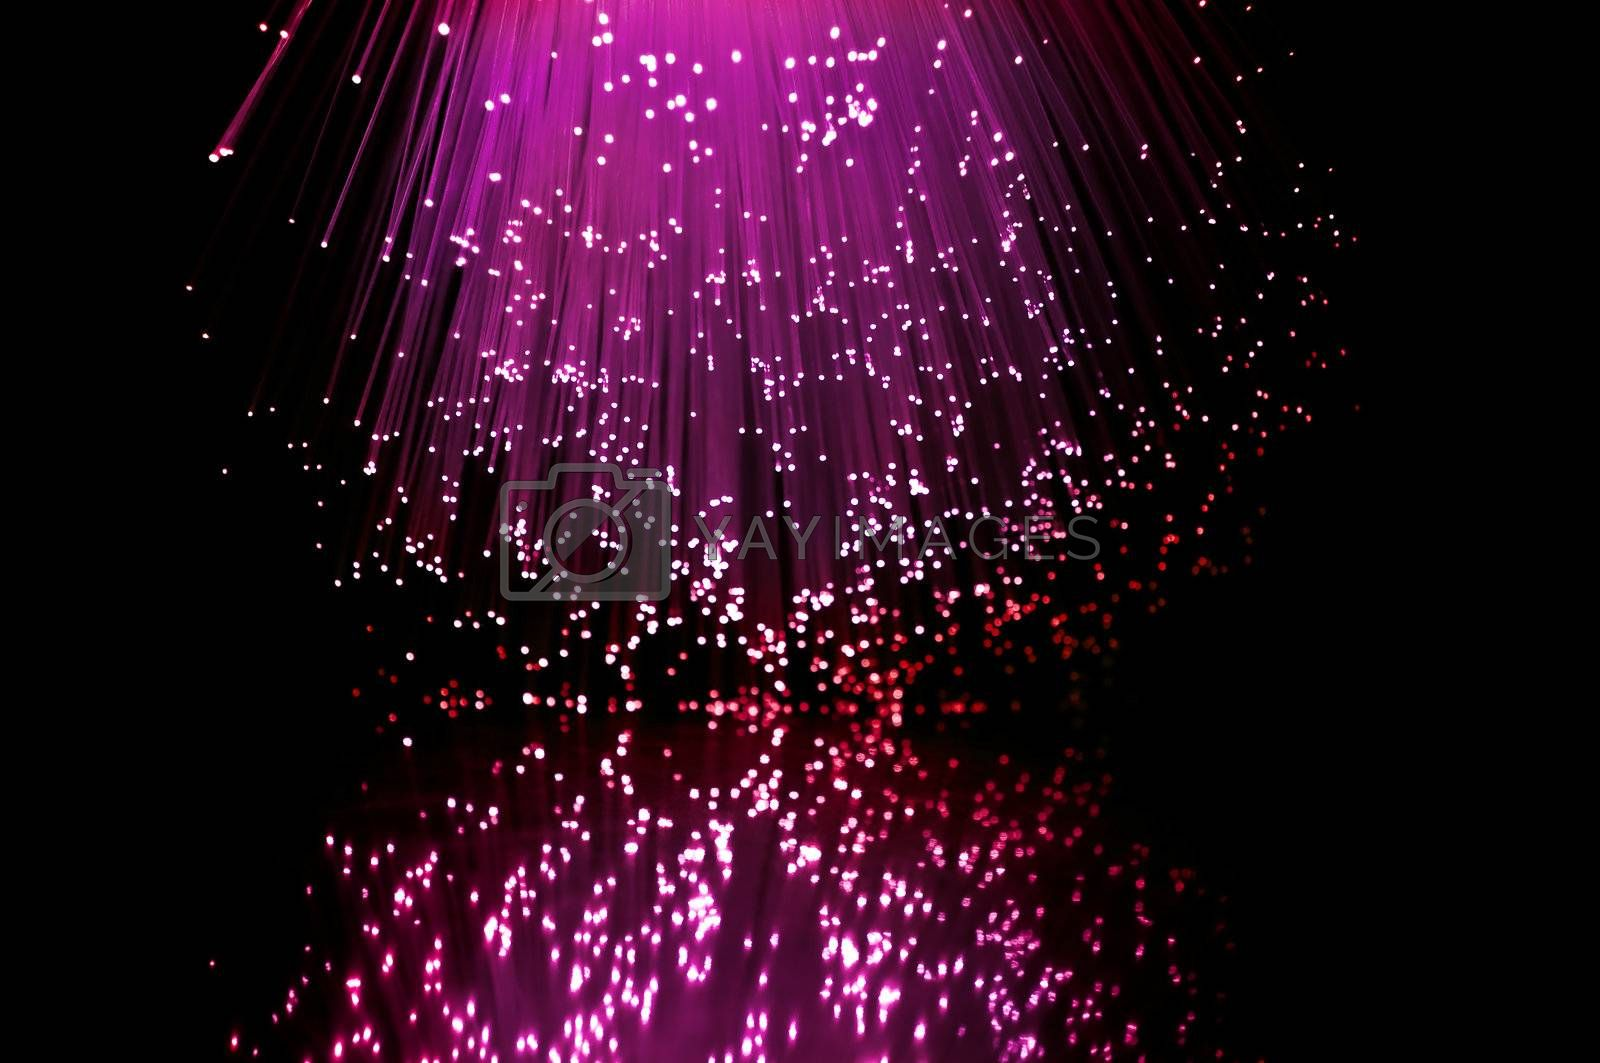 Pink and red fibre optic light strands reflecting in the foreground.